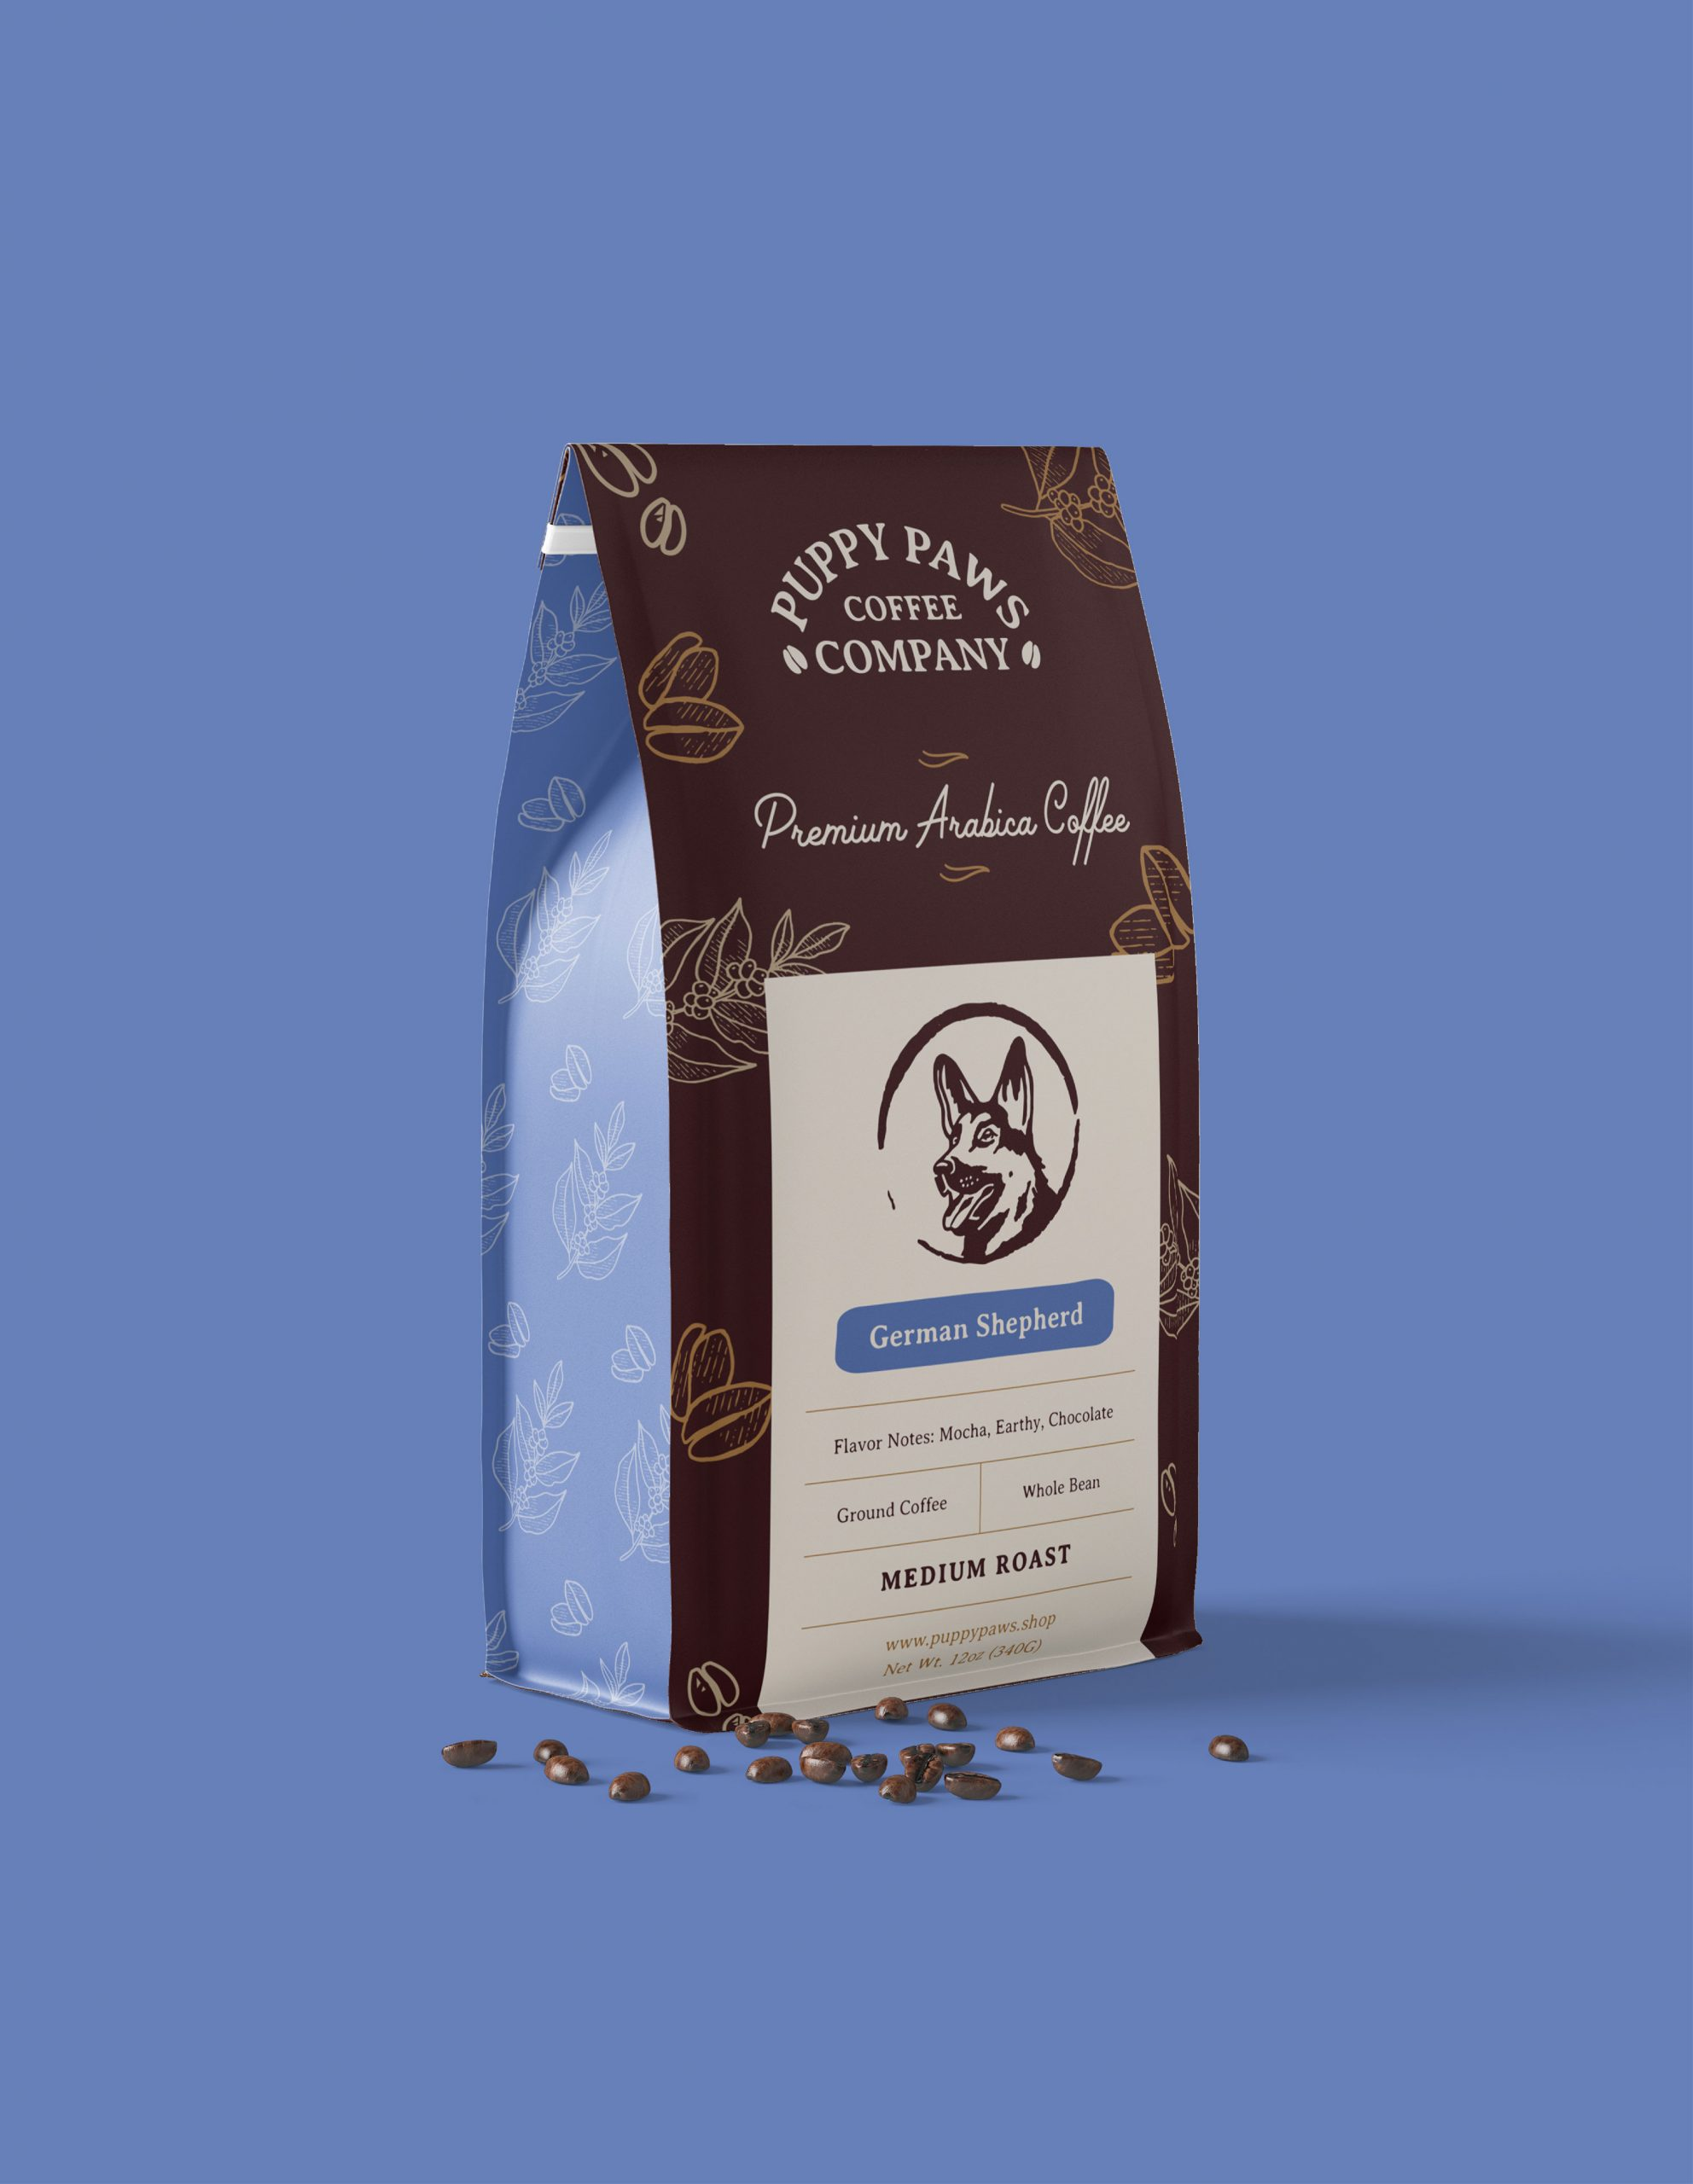 Puppy Paws Coffee Company premium bag of coffee